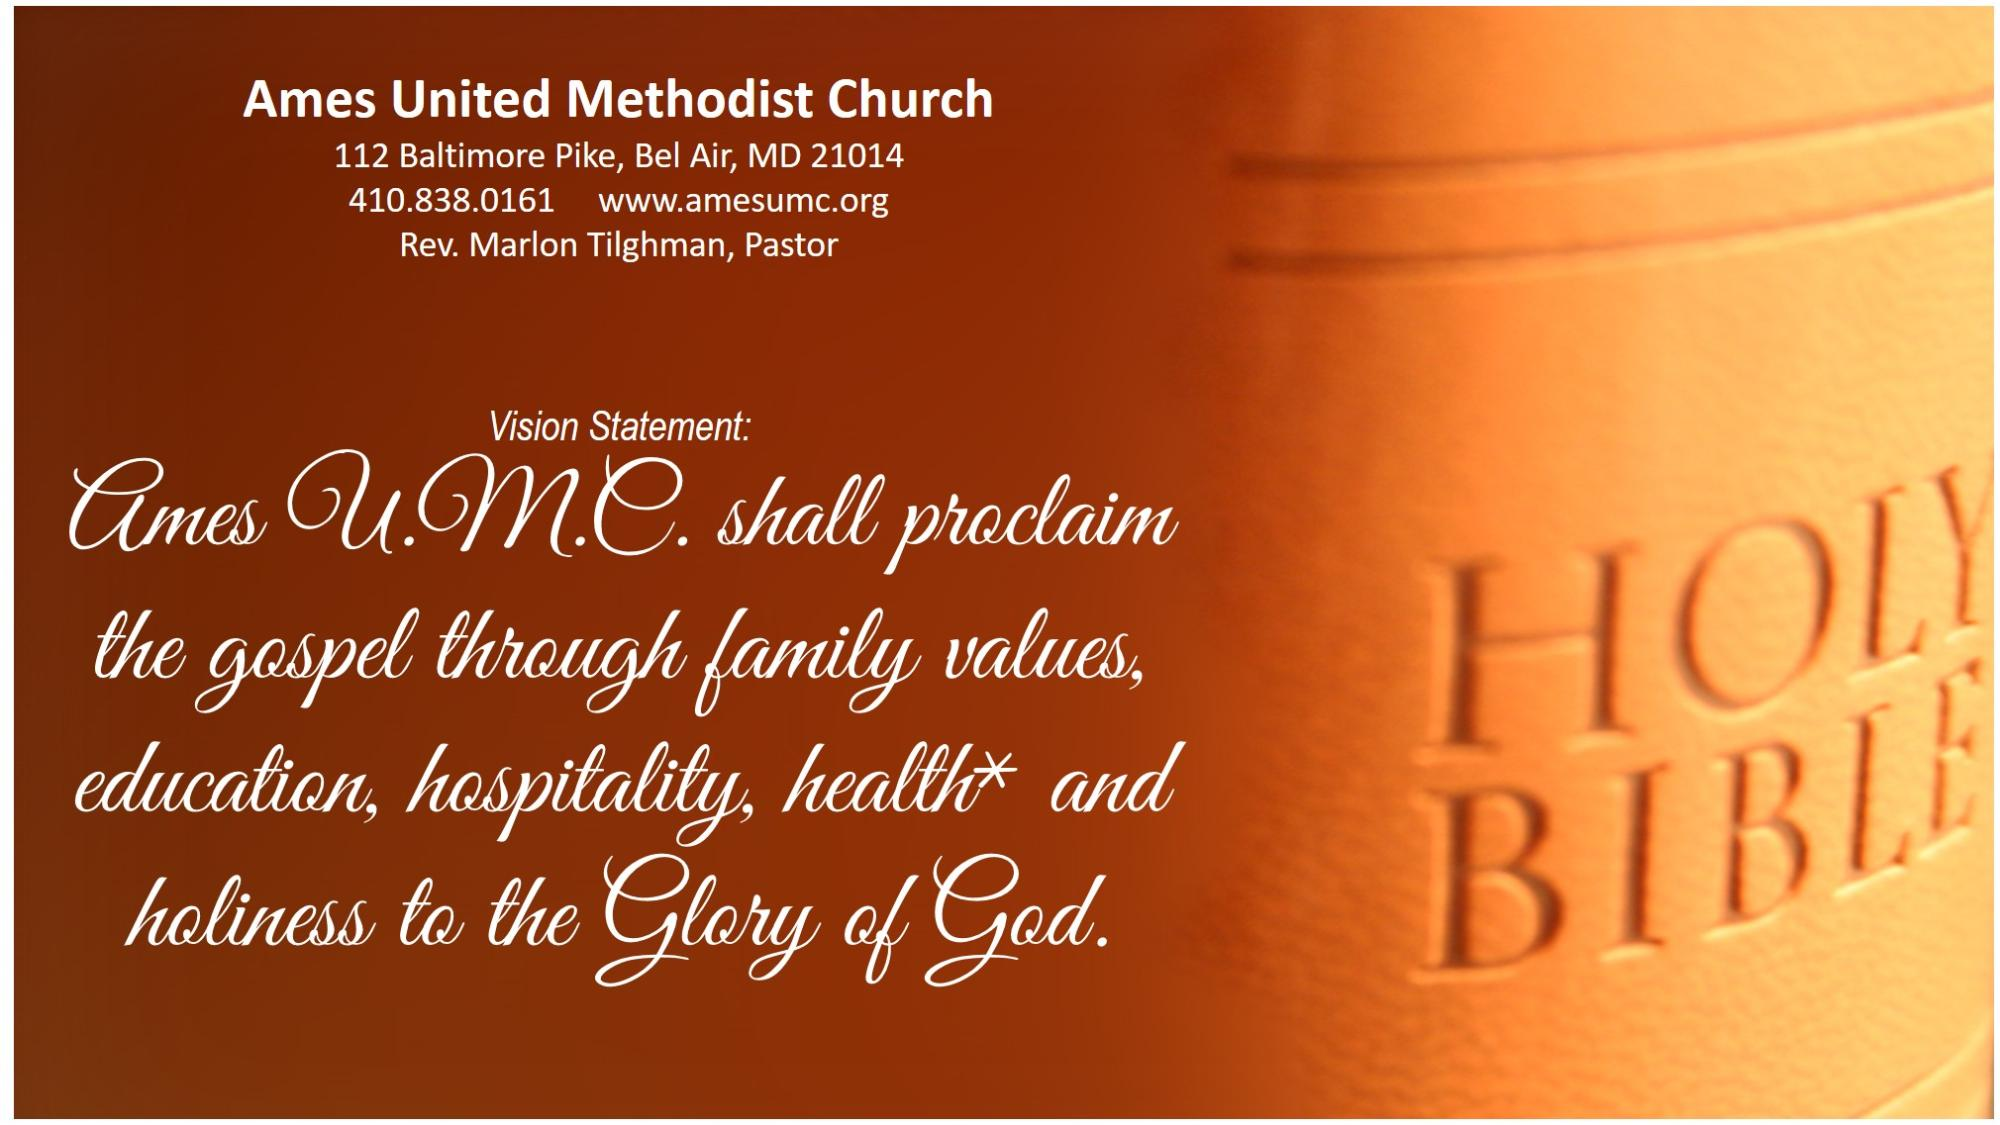 Ames_UMC_-_Vision_Statement.jpg